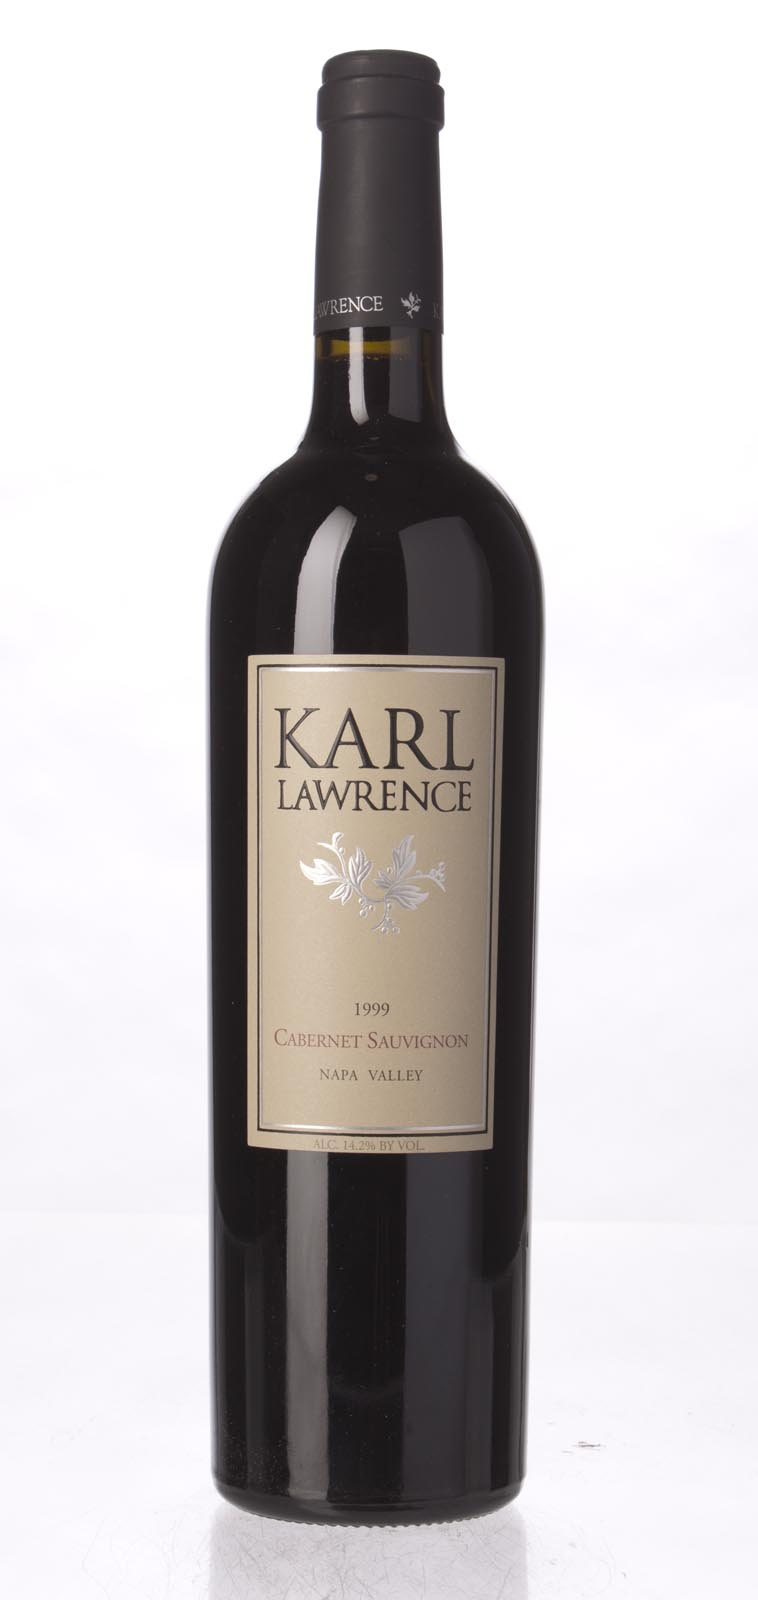 Karl Lawrence Cabernet Sauvignon Napa Valley 1999, 750mL () from The BPW - Merchants of rare and fine wines.